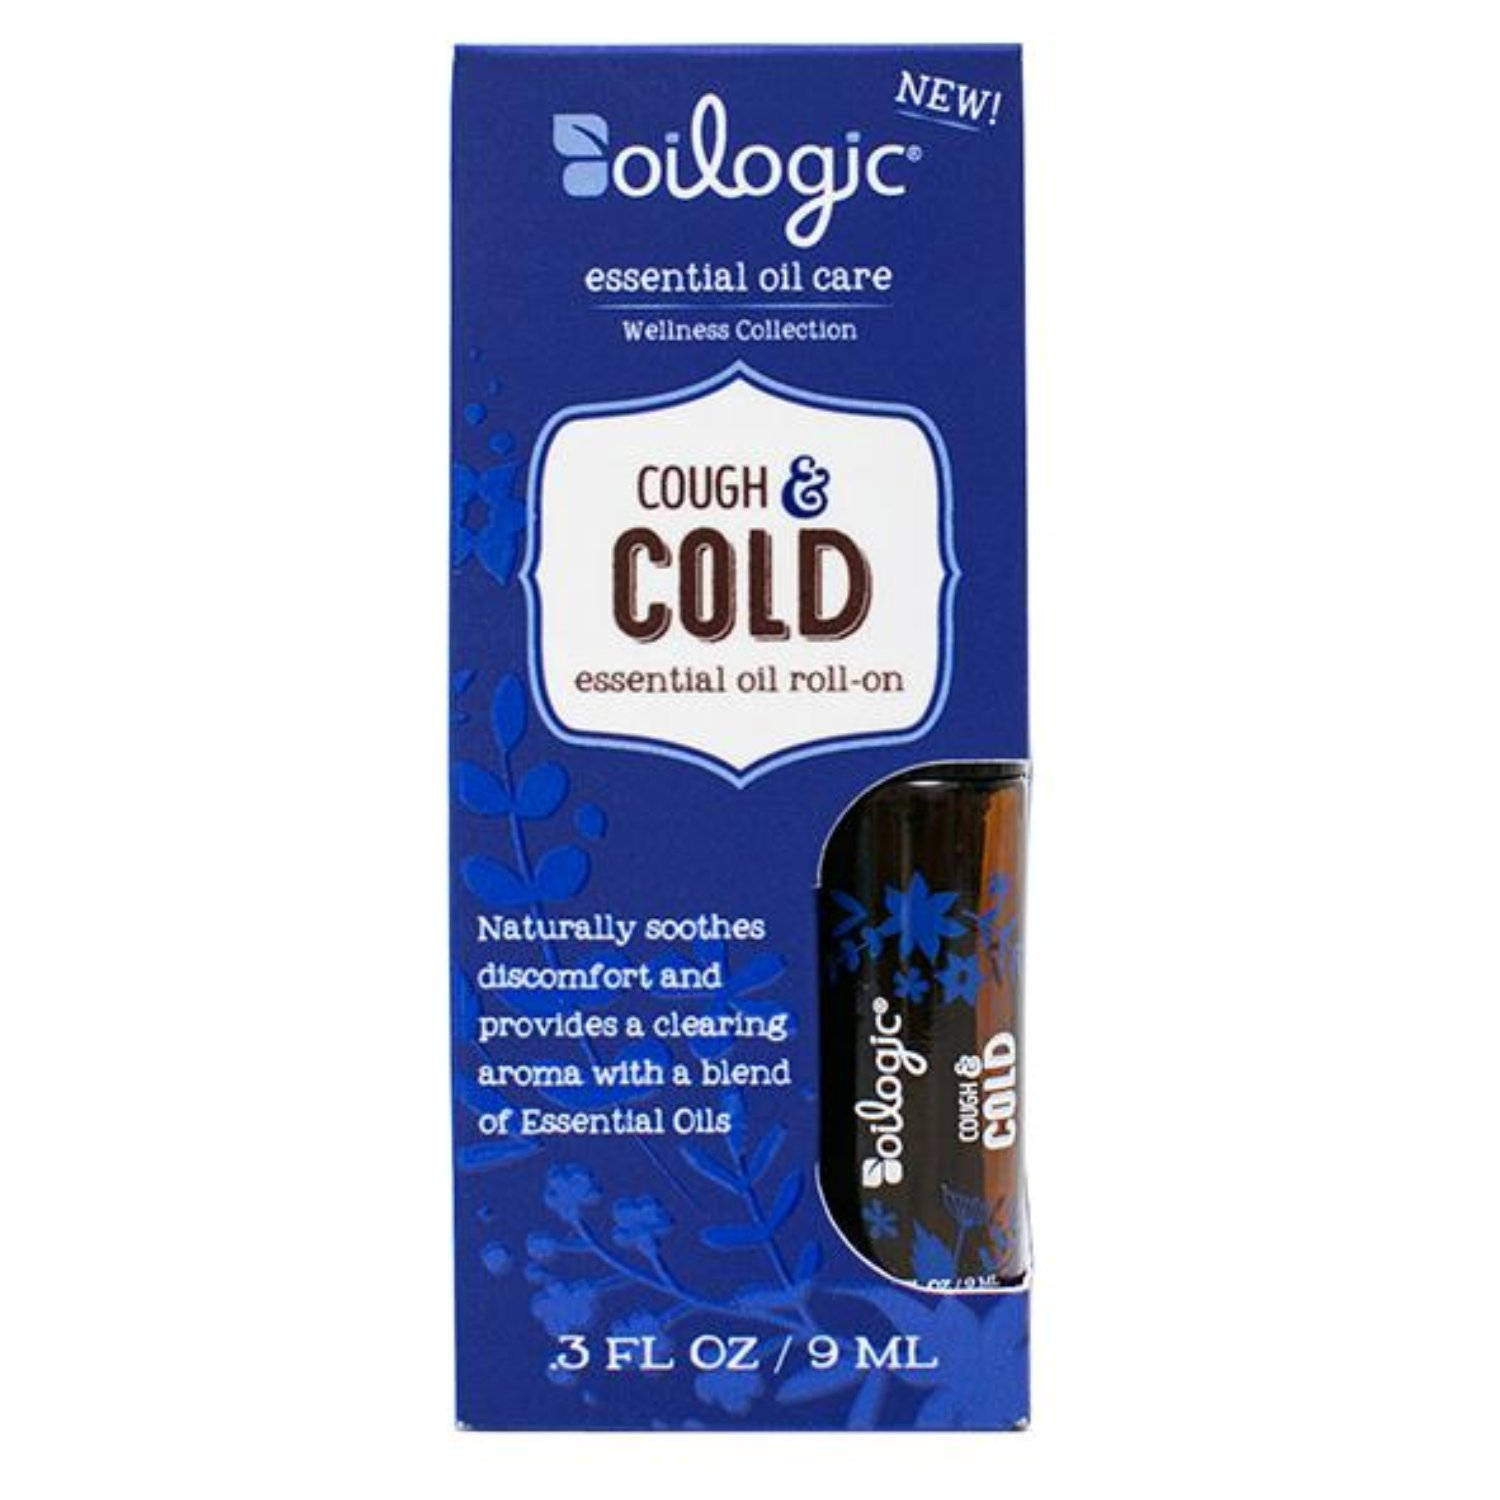 Oilogic Cough & Cold Essential Oil Roll-On